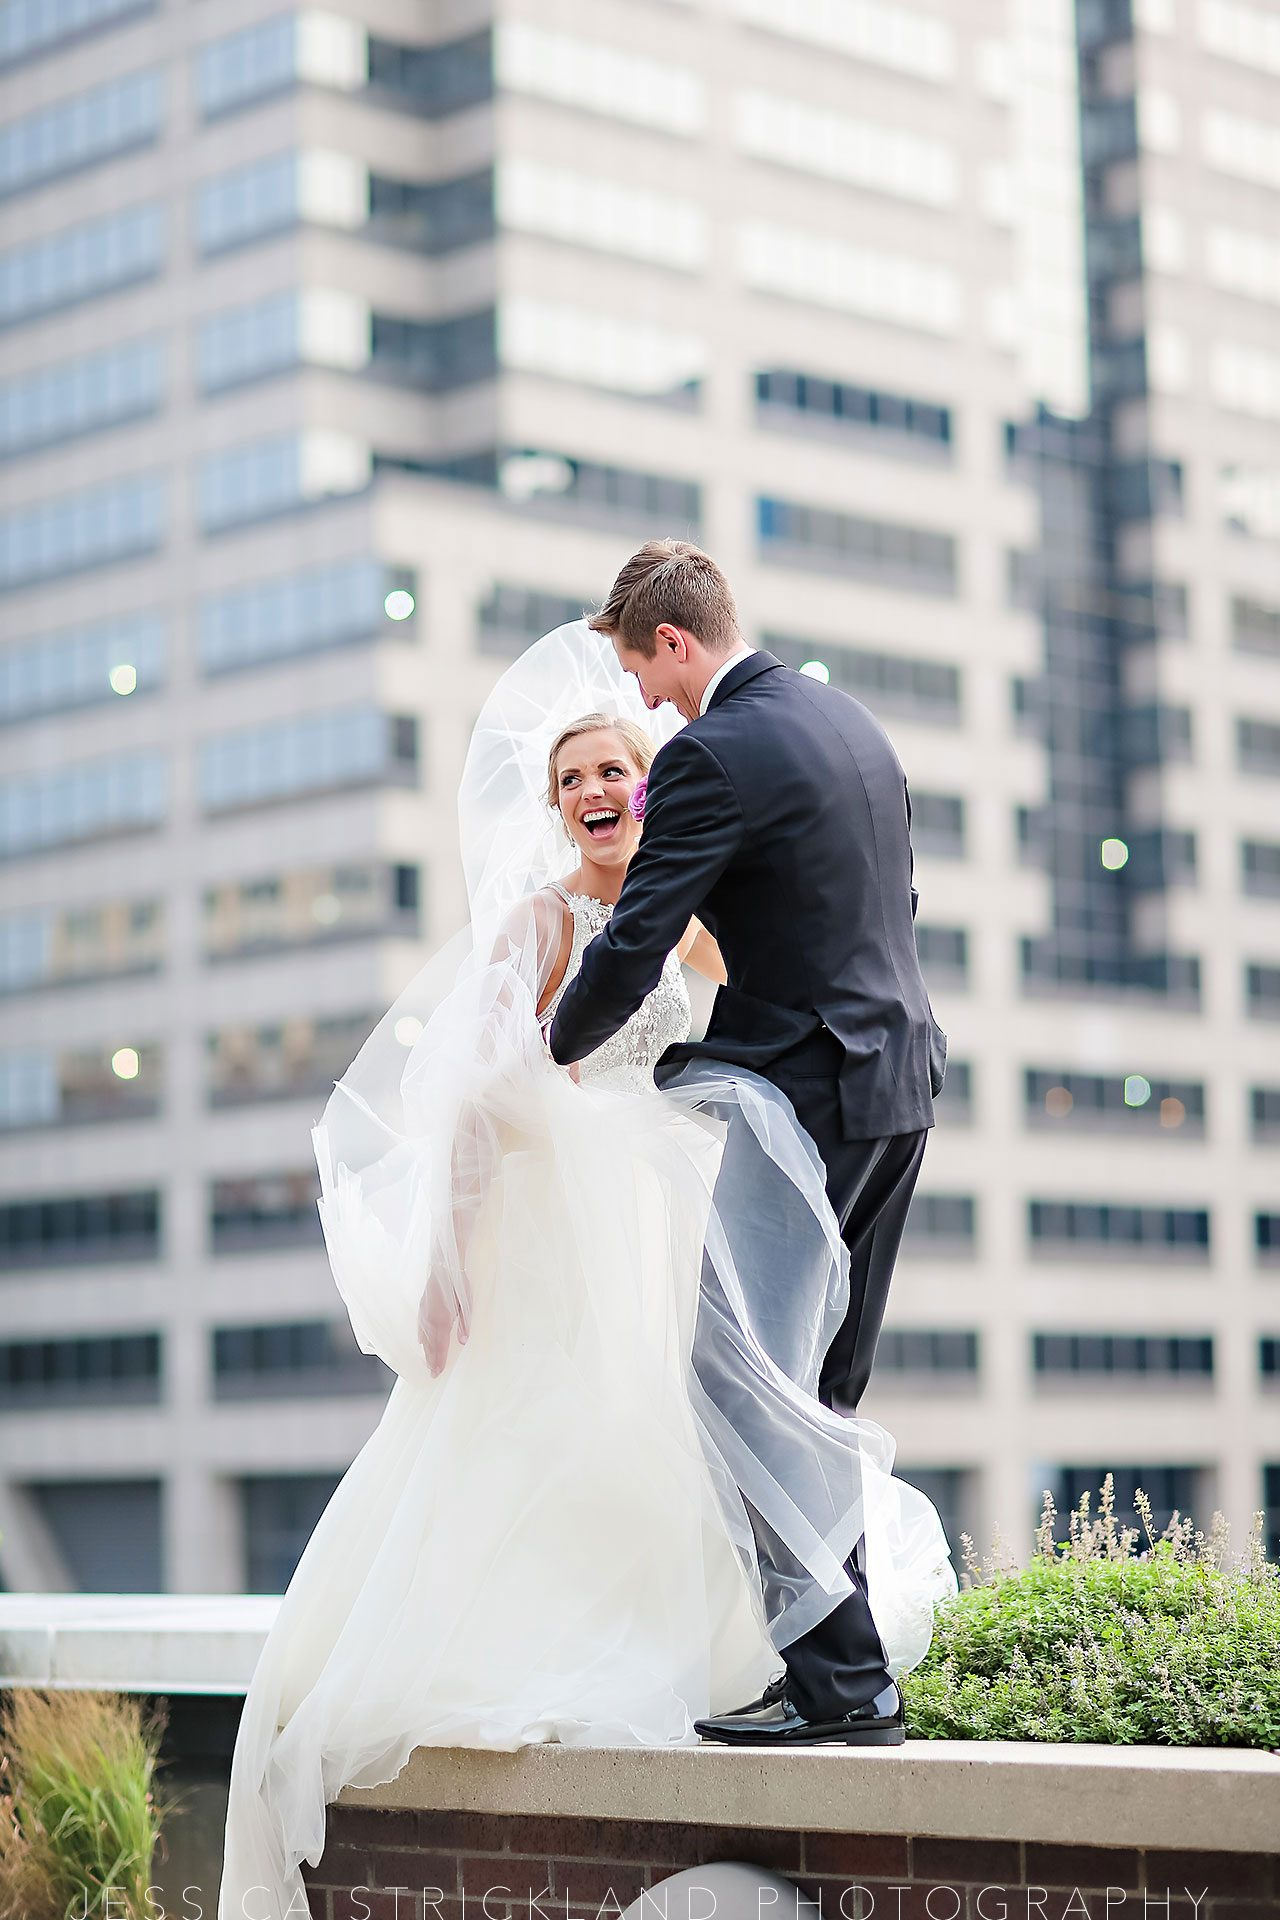 Serra Alex Regions Tower Indianapolis Wedding 254 watermarked